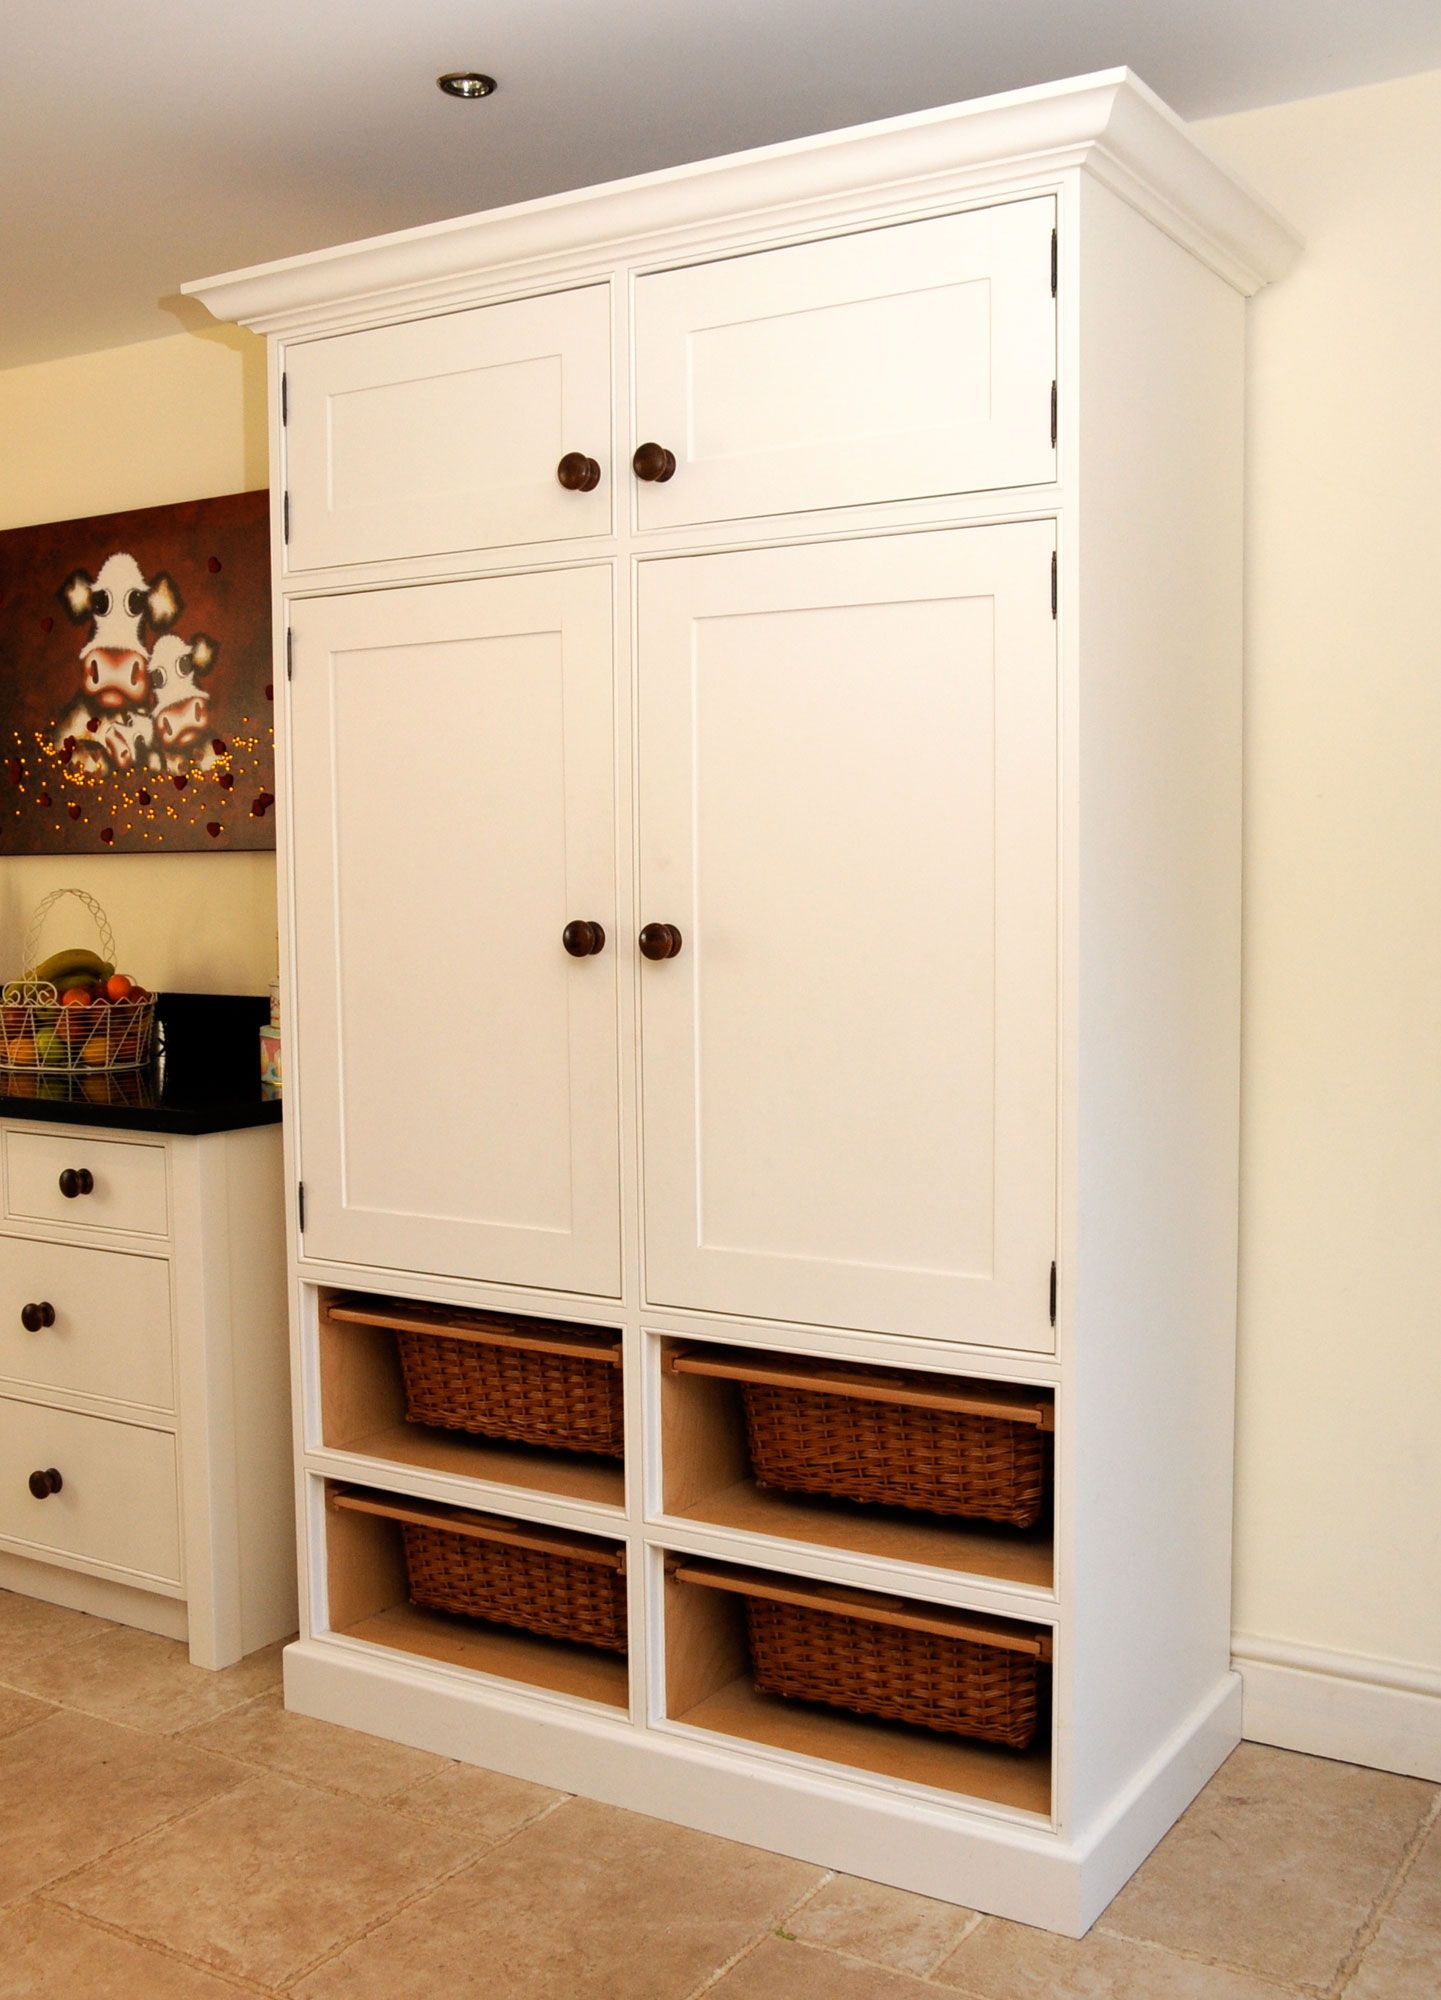 Free Standing Kitchen Cupboards 1000+ images about free standing cupboards on pinterest | solid